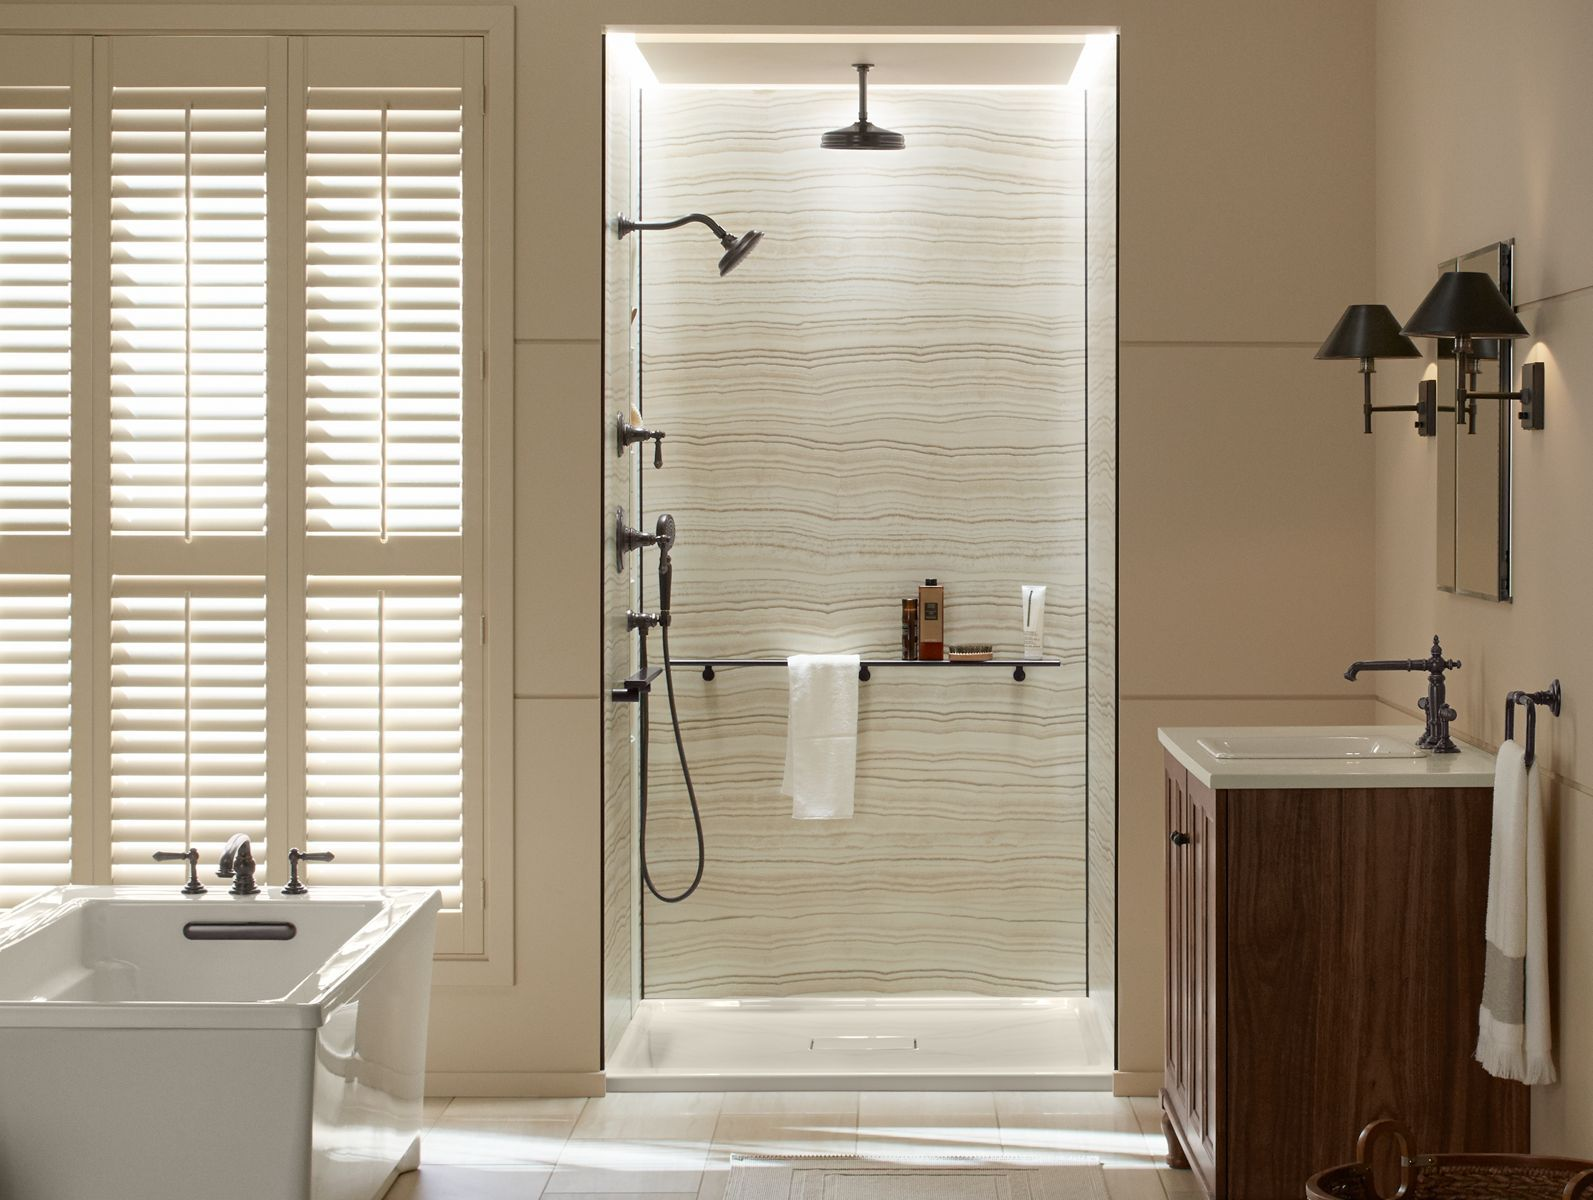 Shower Walls Bathroom Kohler With Images Shower Wall